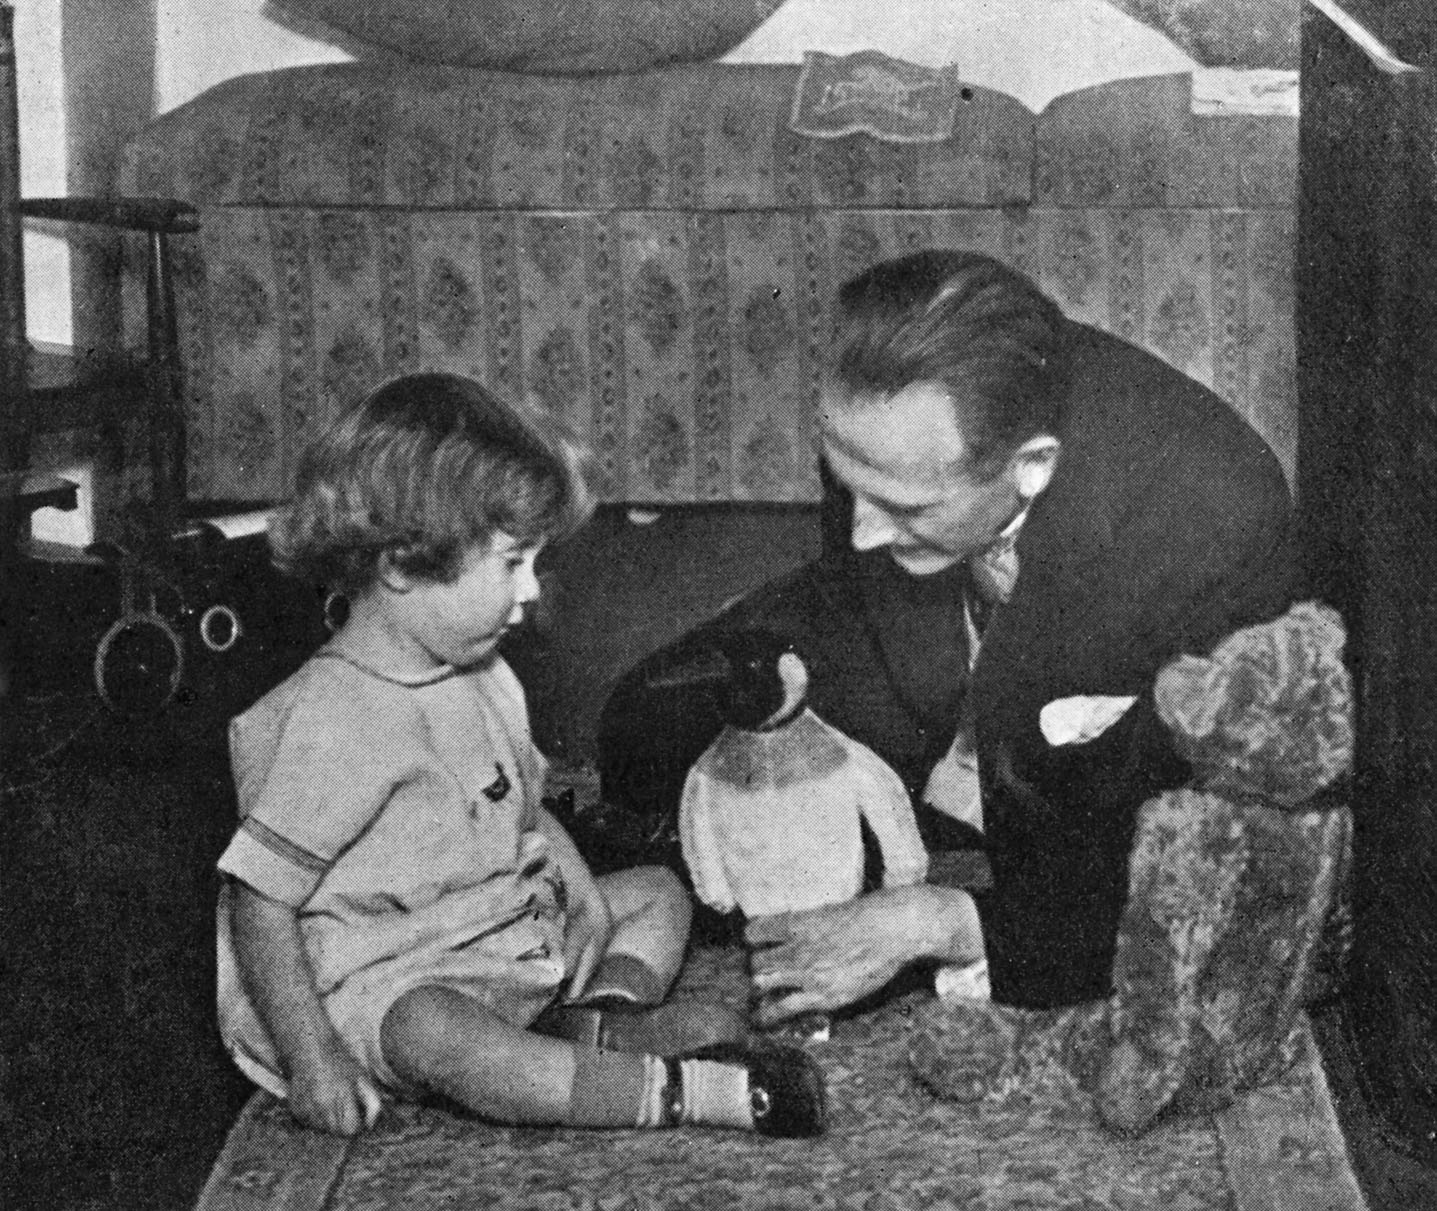 A. A. Milne and Christopher Robin Milne playing with a toy teddy bear.